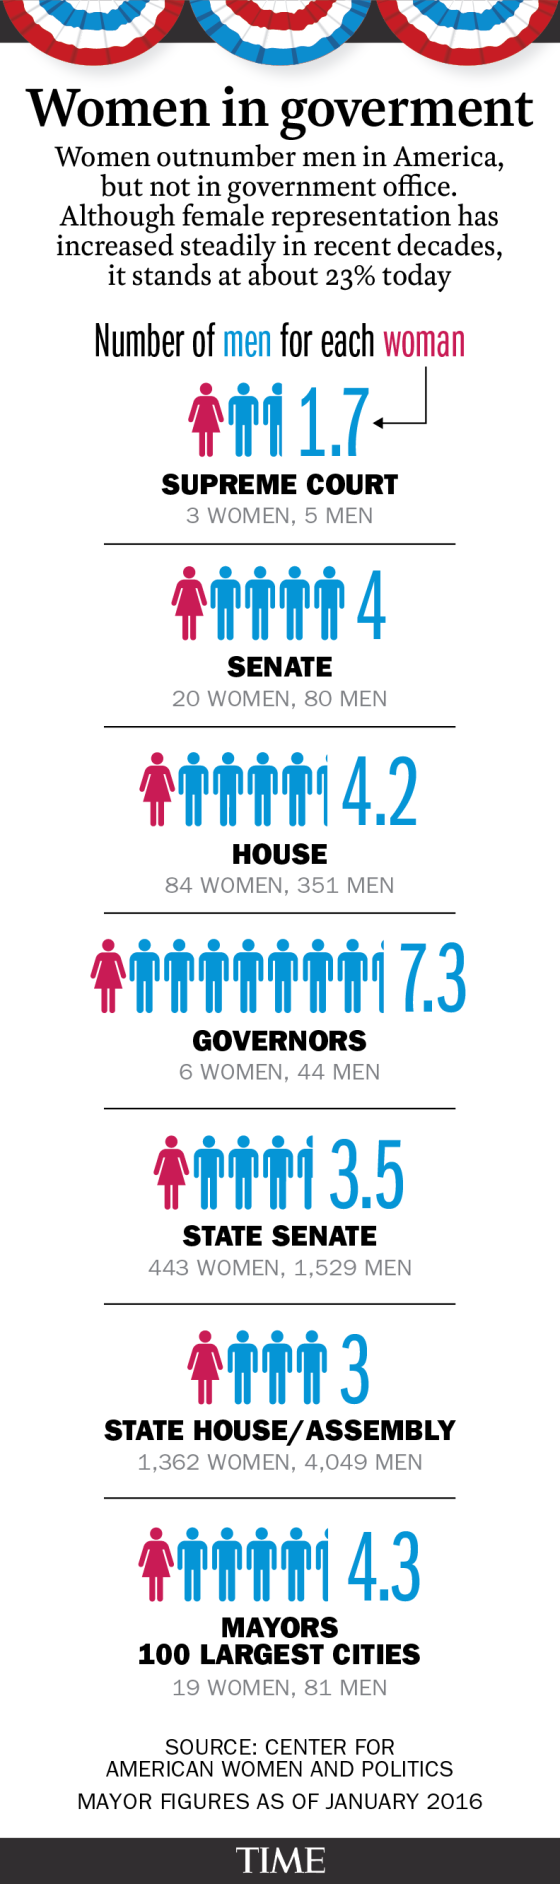 women-in-government2